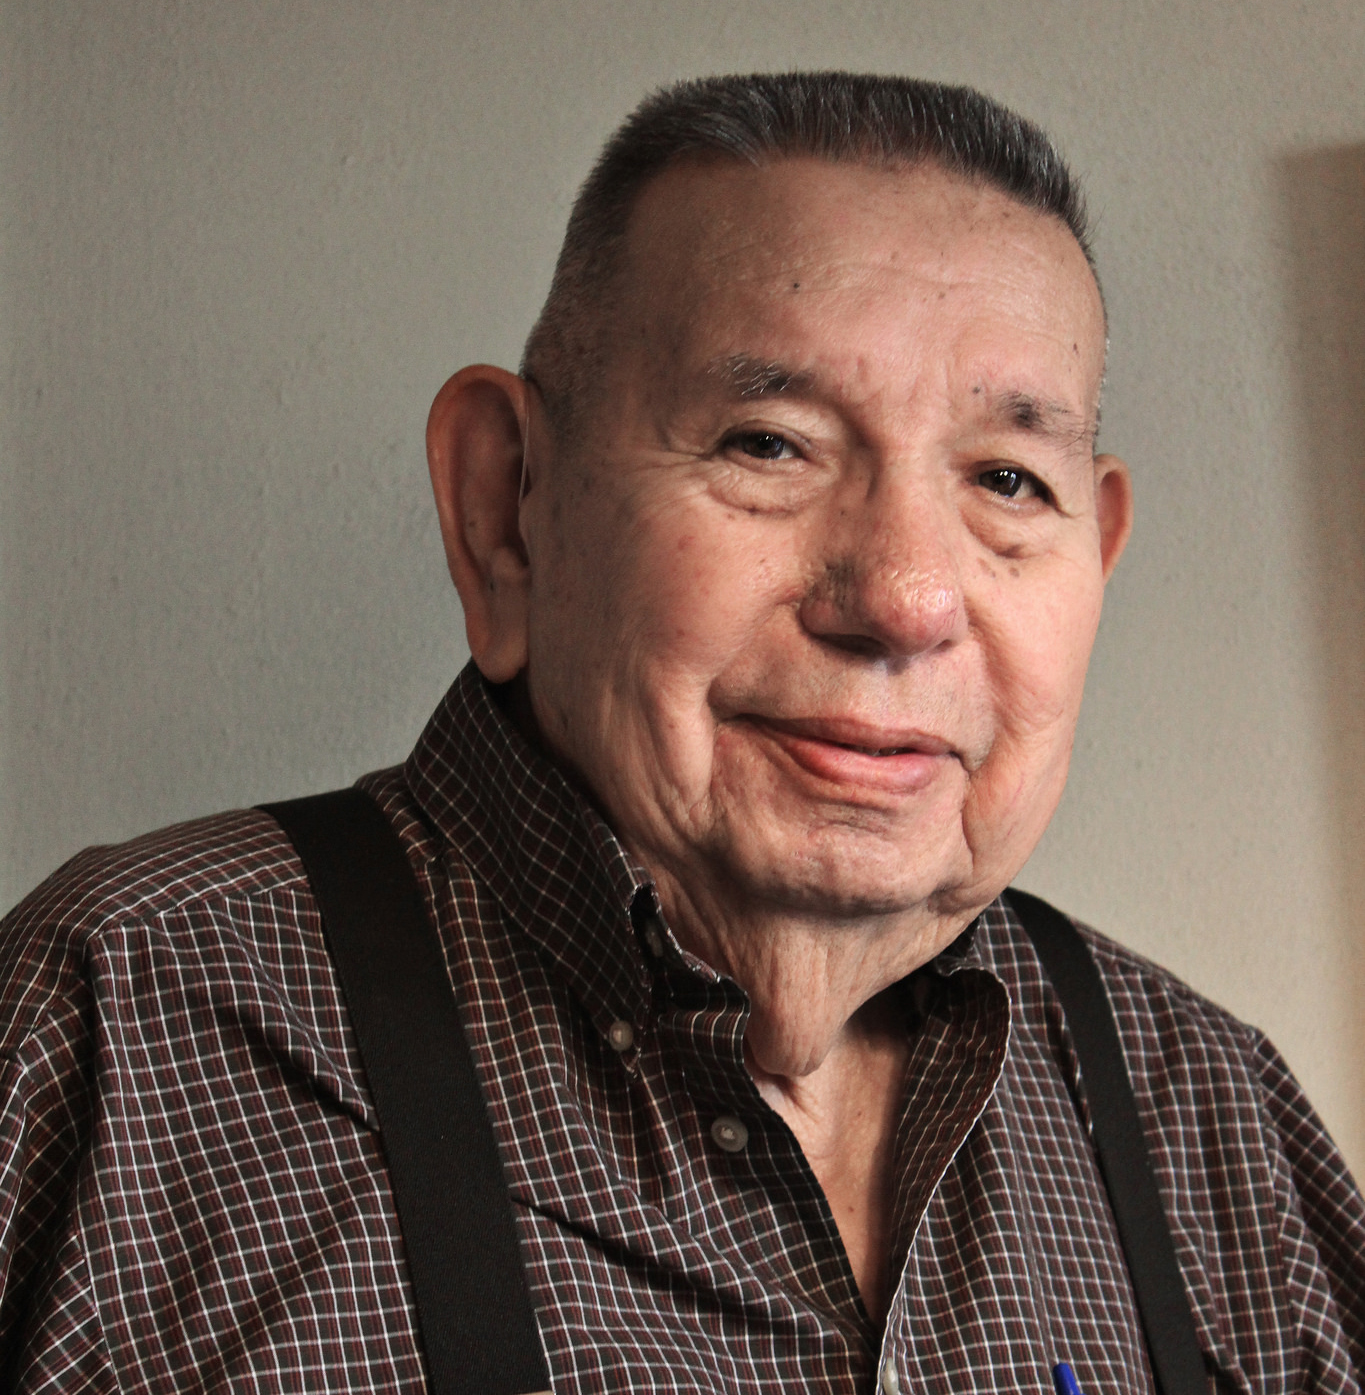 Capt. Richard Luttrell Sr. to be honored at 10th Annual AARP Oklahoma Indian Elder Honors